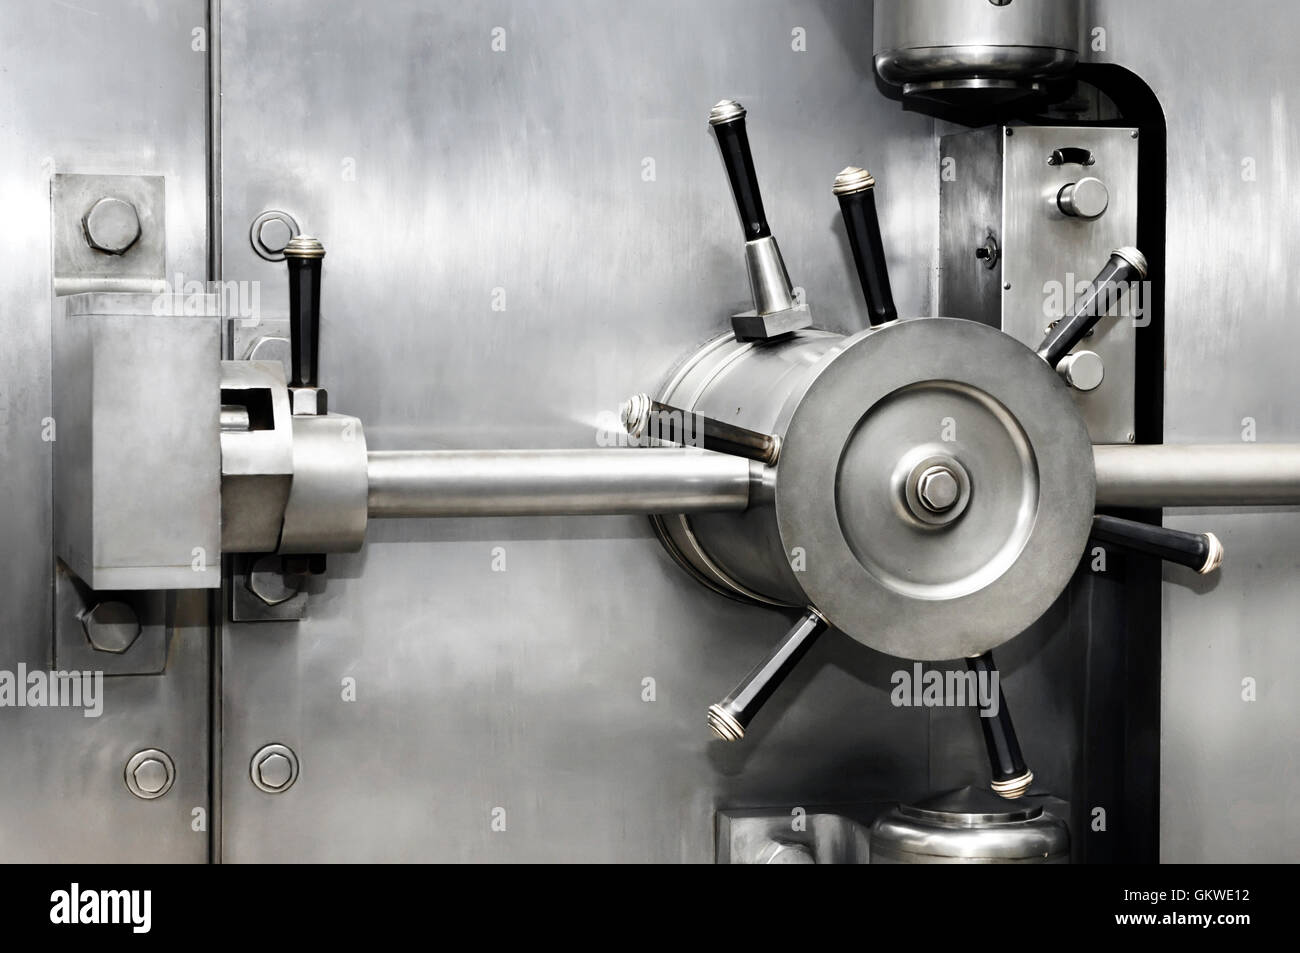 Shiny stainless steel bank vault safe door lock. Banking, security, investment concept. - Stock Image